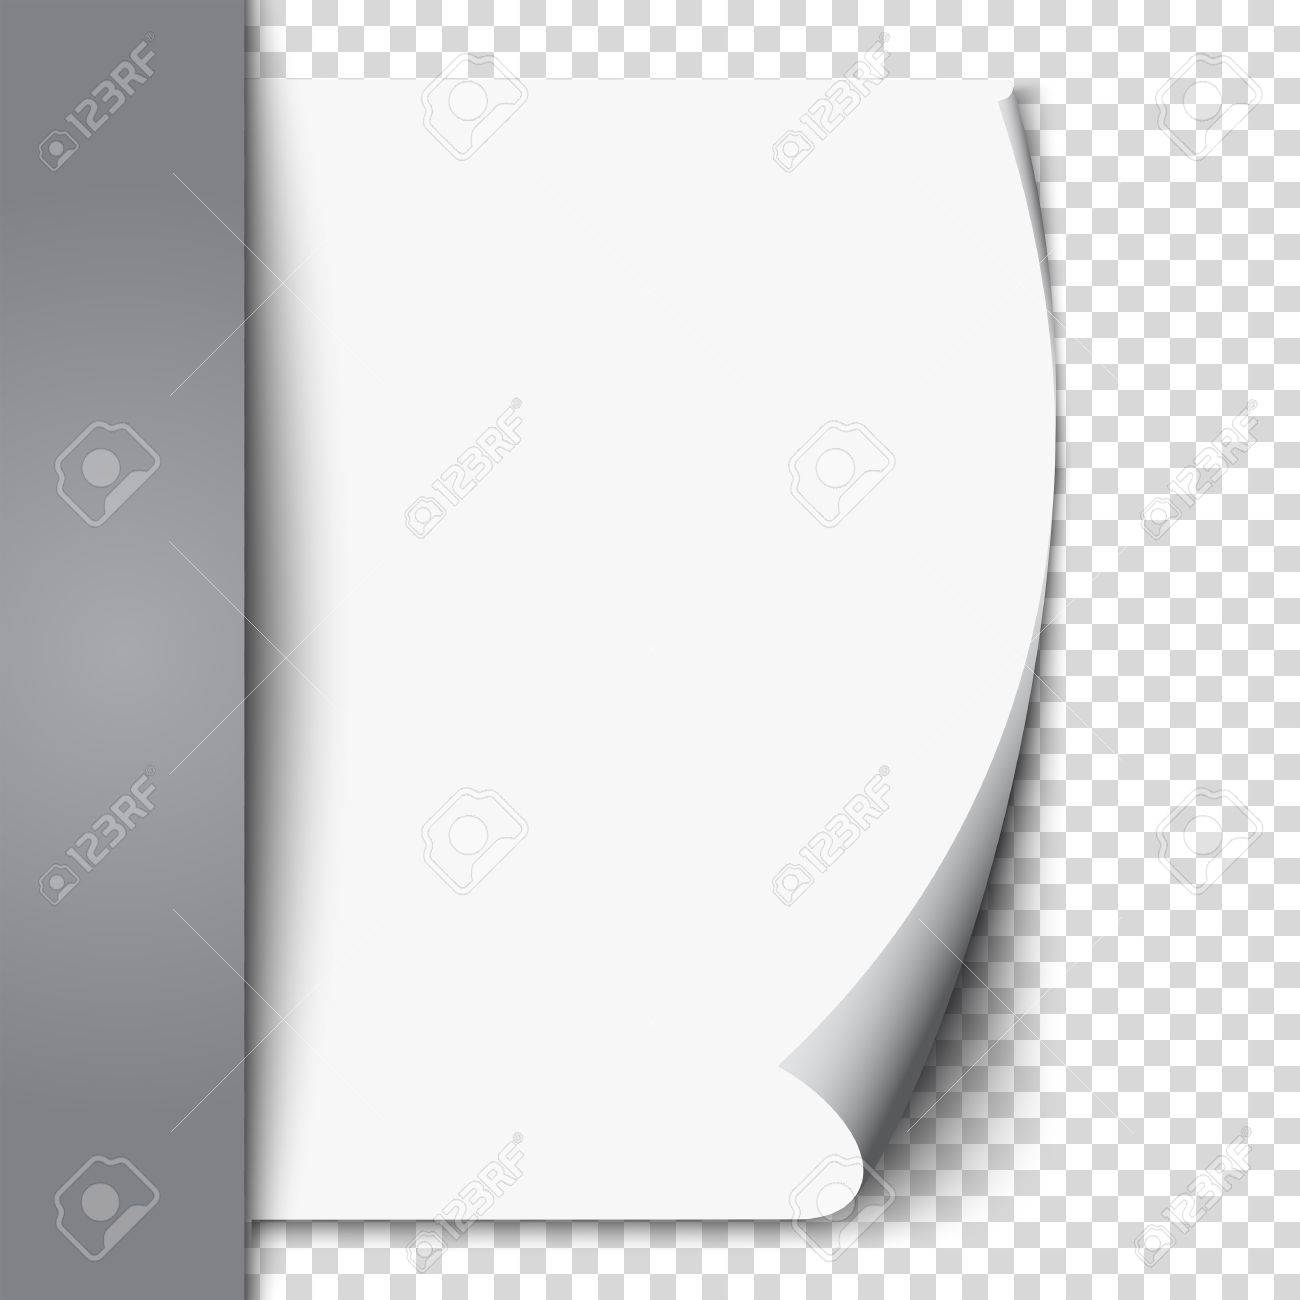 New White Page Curl On Blank Sheet Isolated Paper. Realistic Empty Folded  Page. Transparent  Blank Sheet Of Paper With Lines